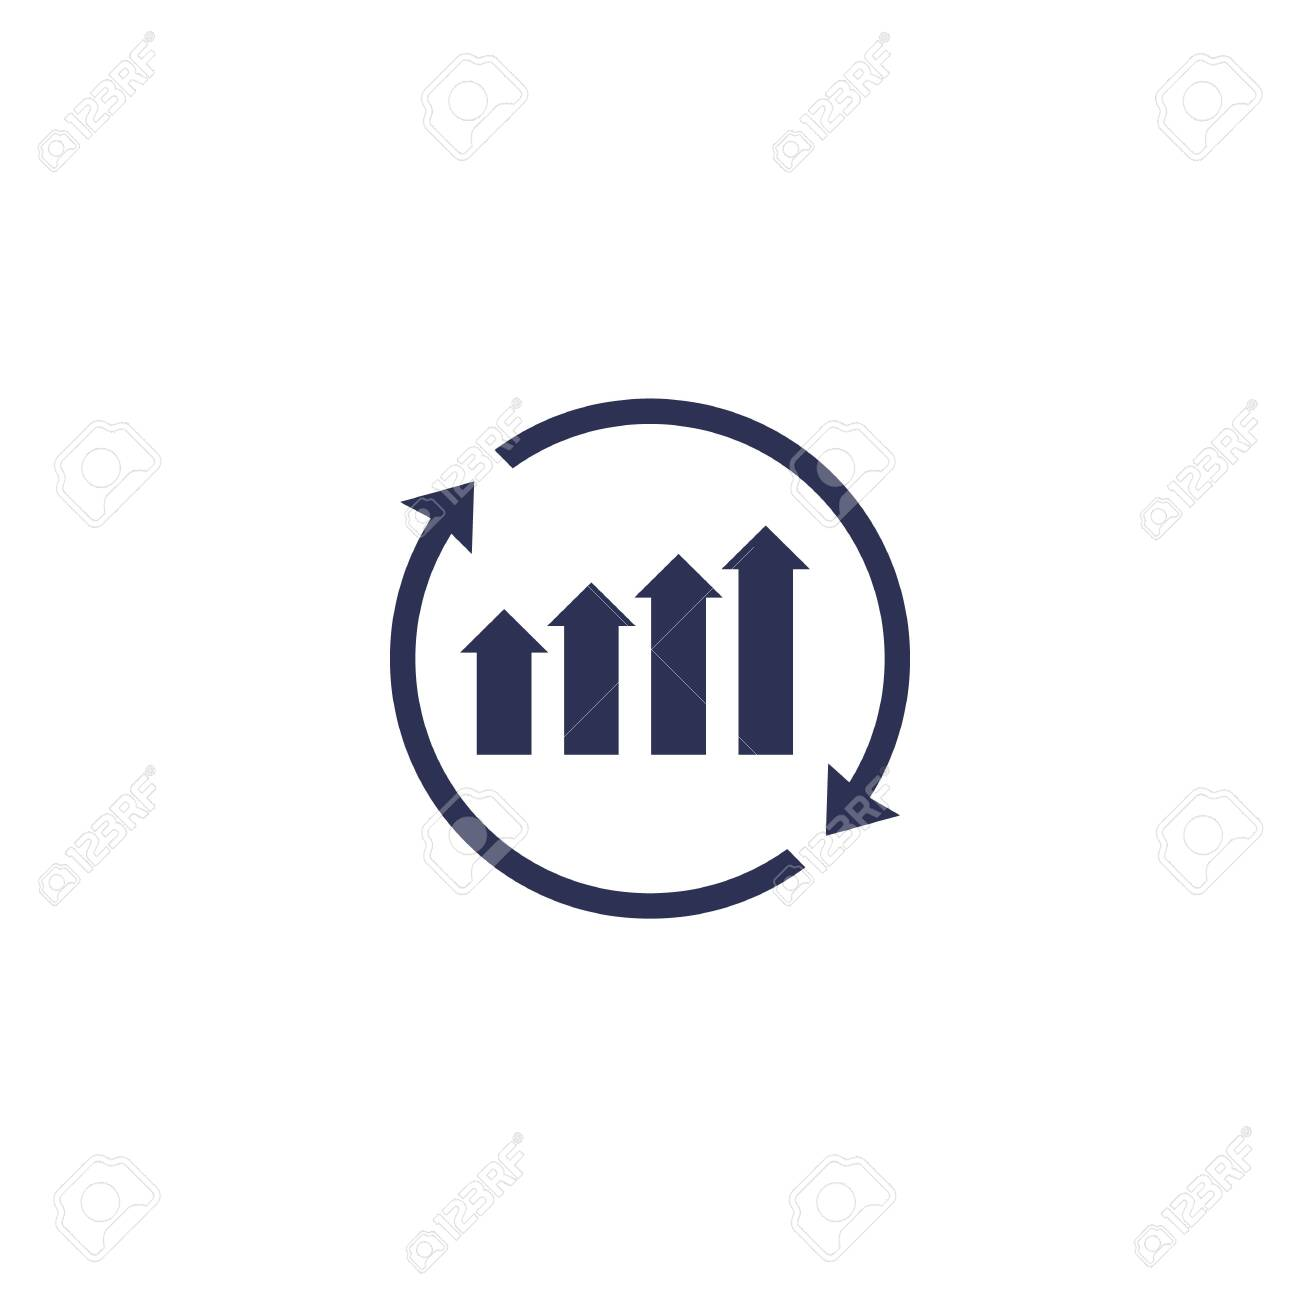 continuous growth icon - 123757792